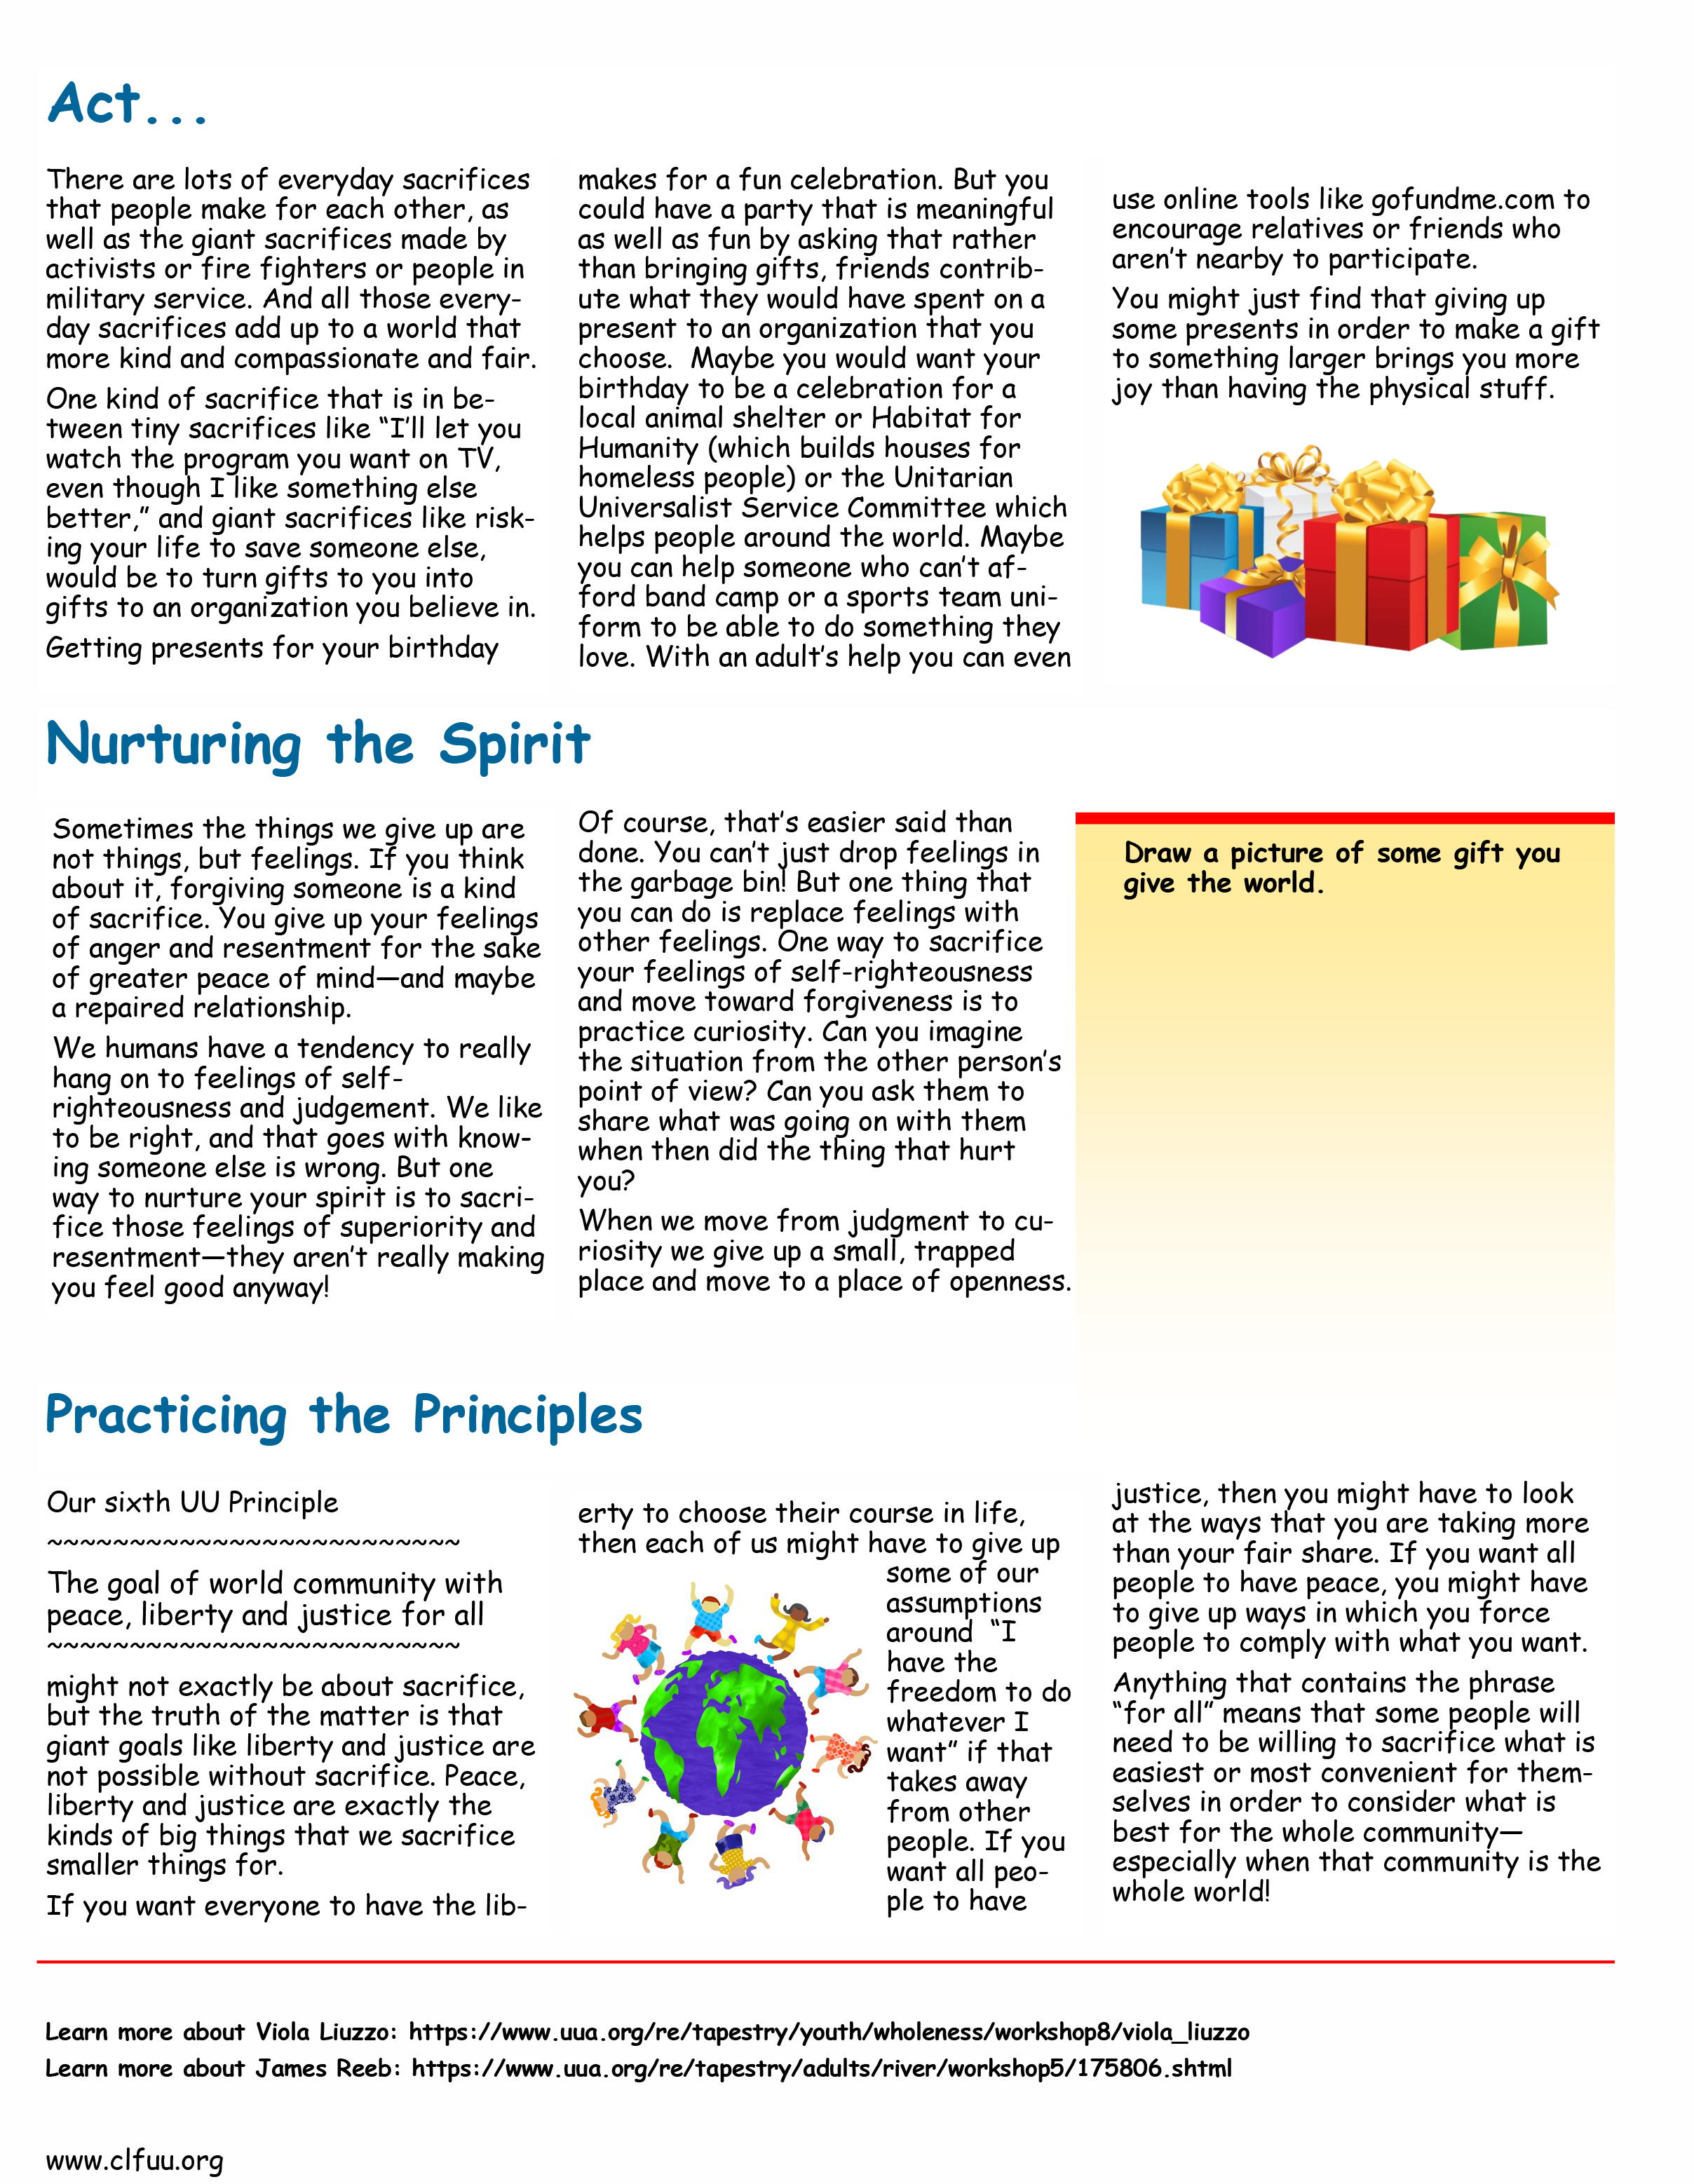 REfrigerator_Page_10-19-2.png